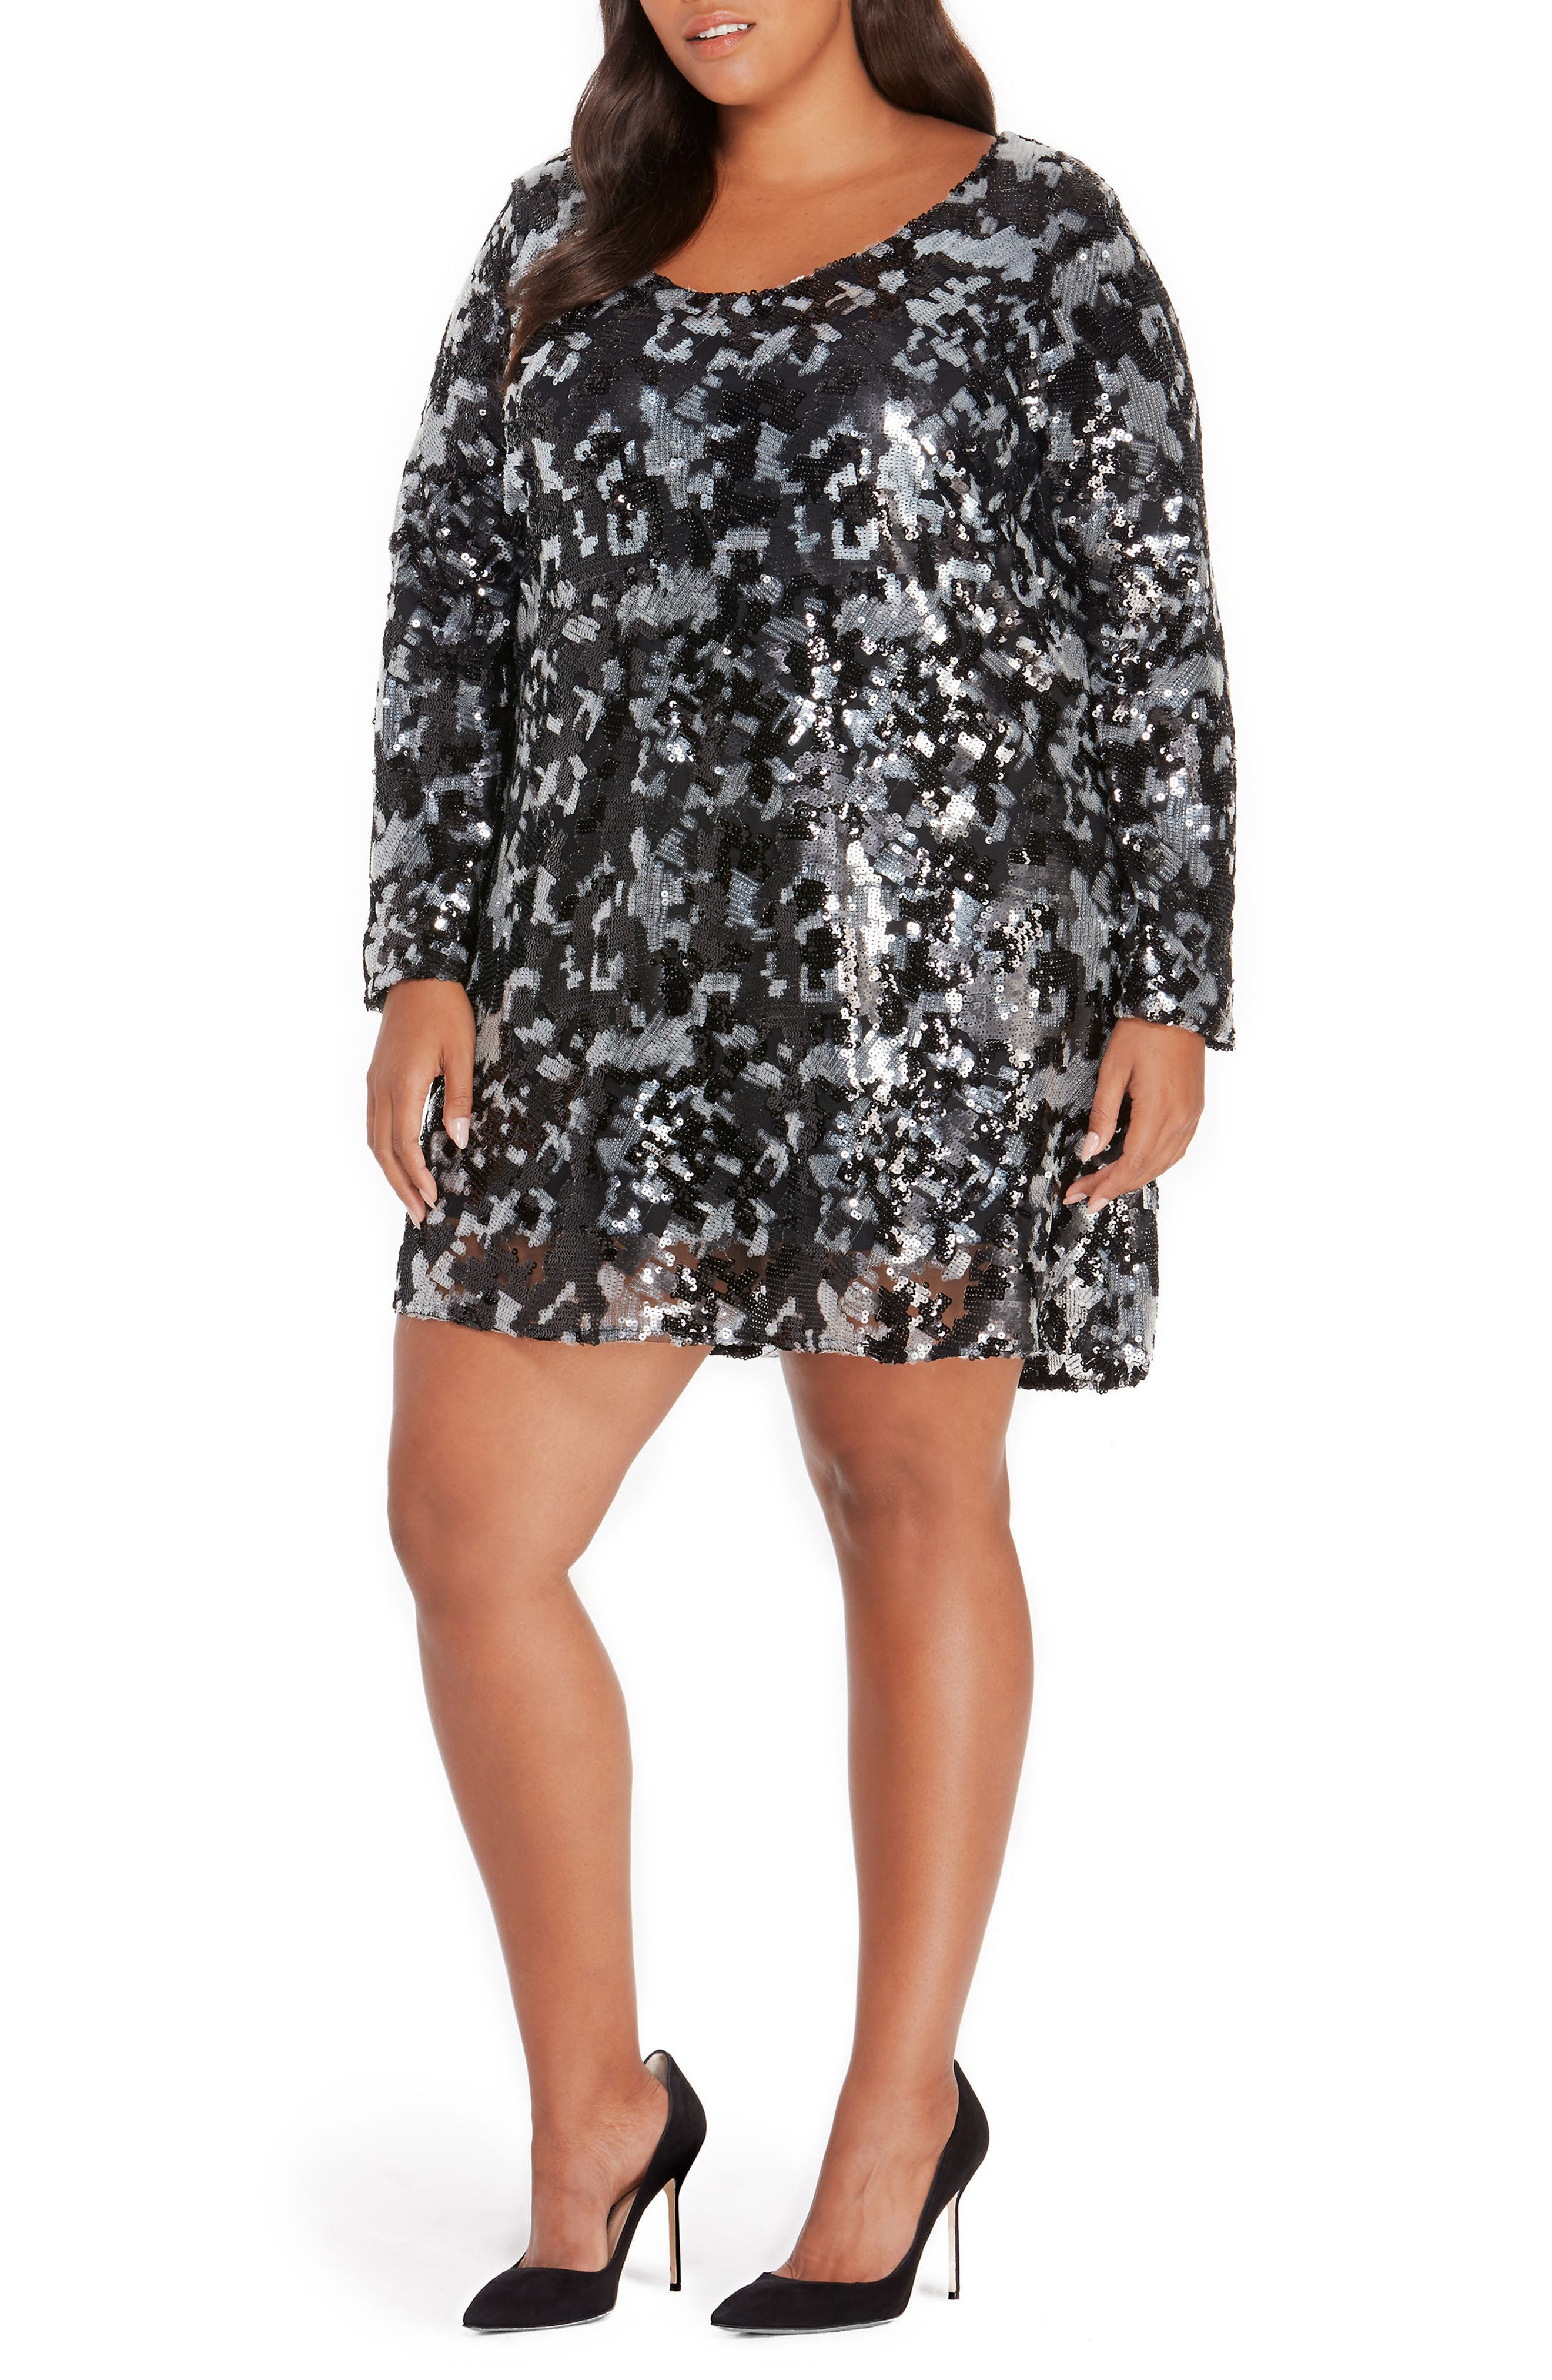 Alternate Image 1 Selected - Rebel Wilson x Angels Sequin Dress (Plus Size)